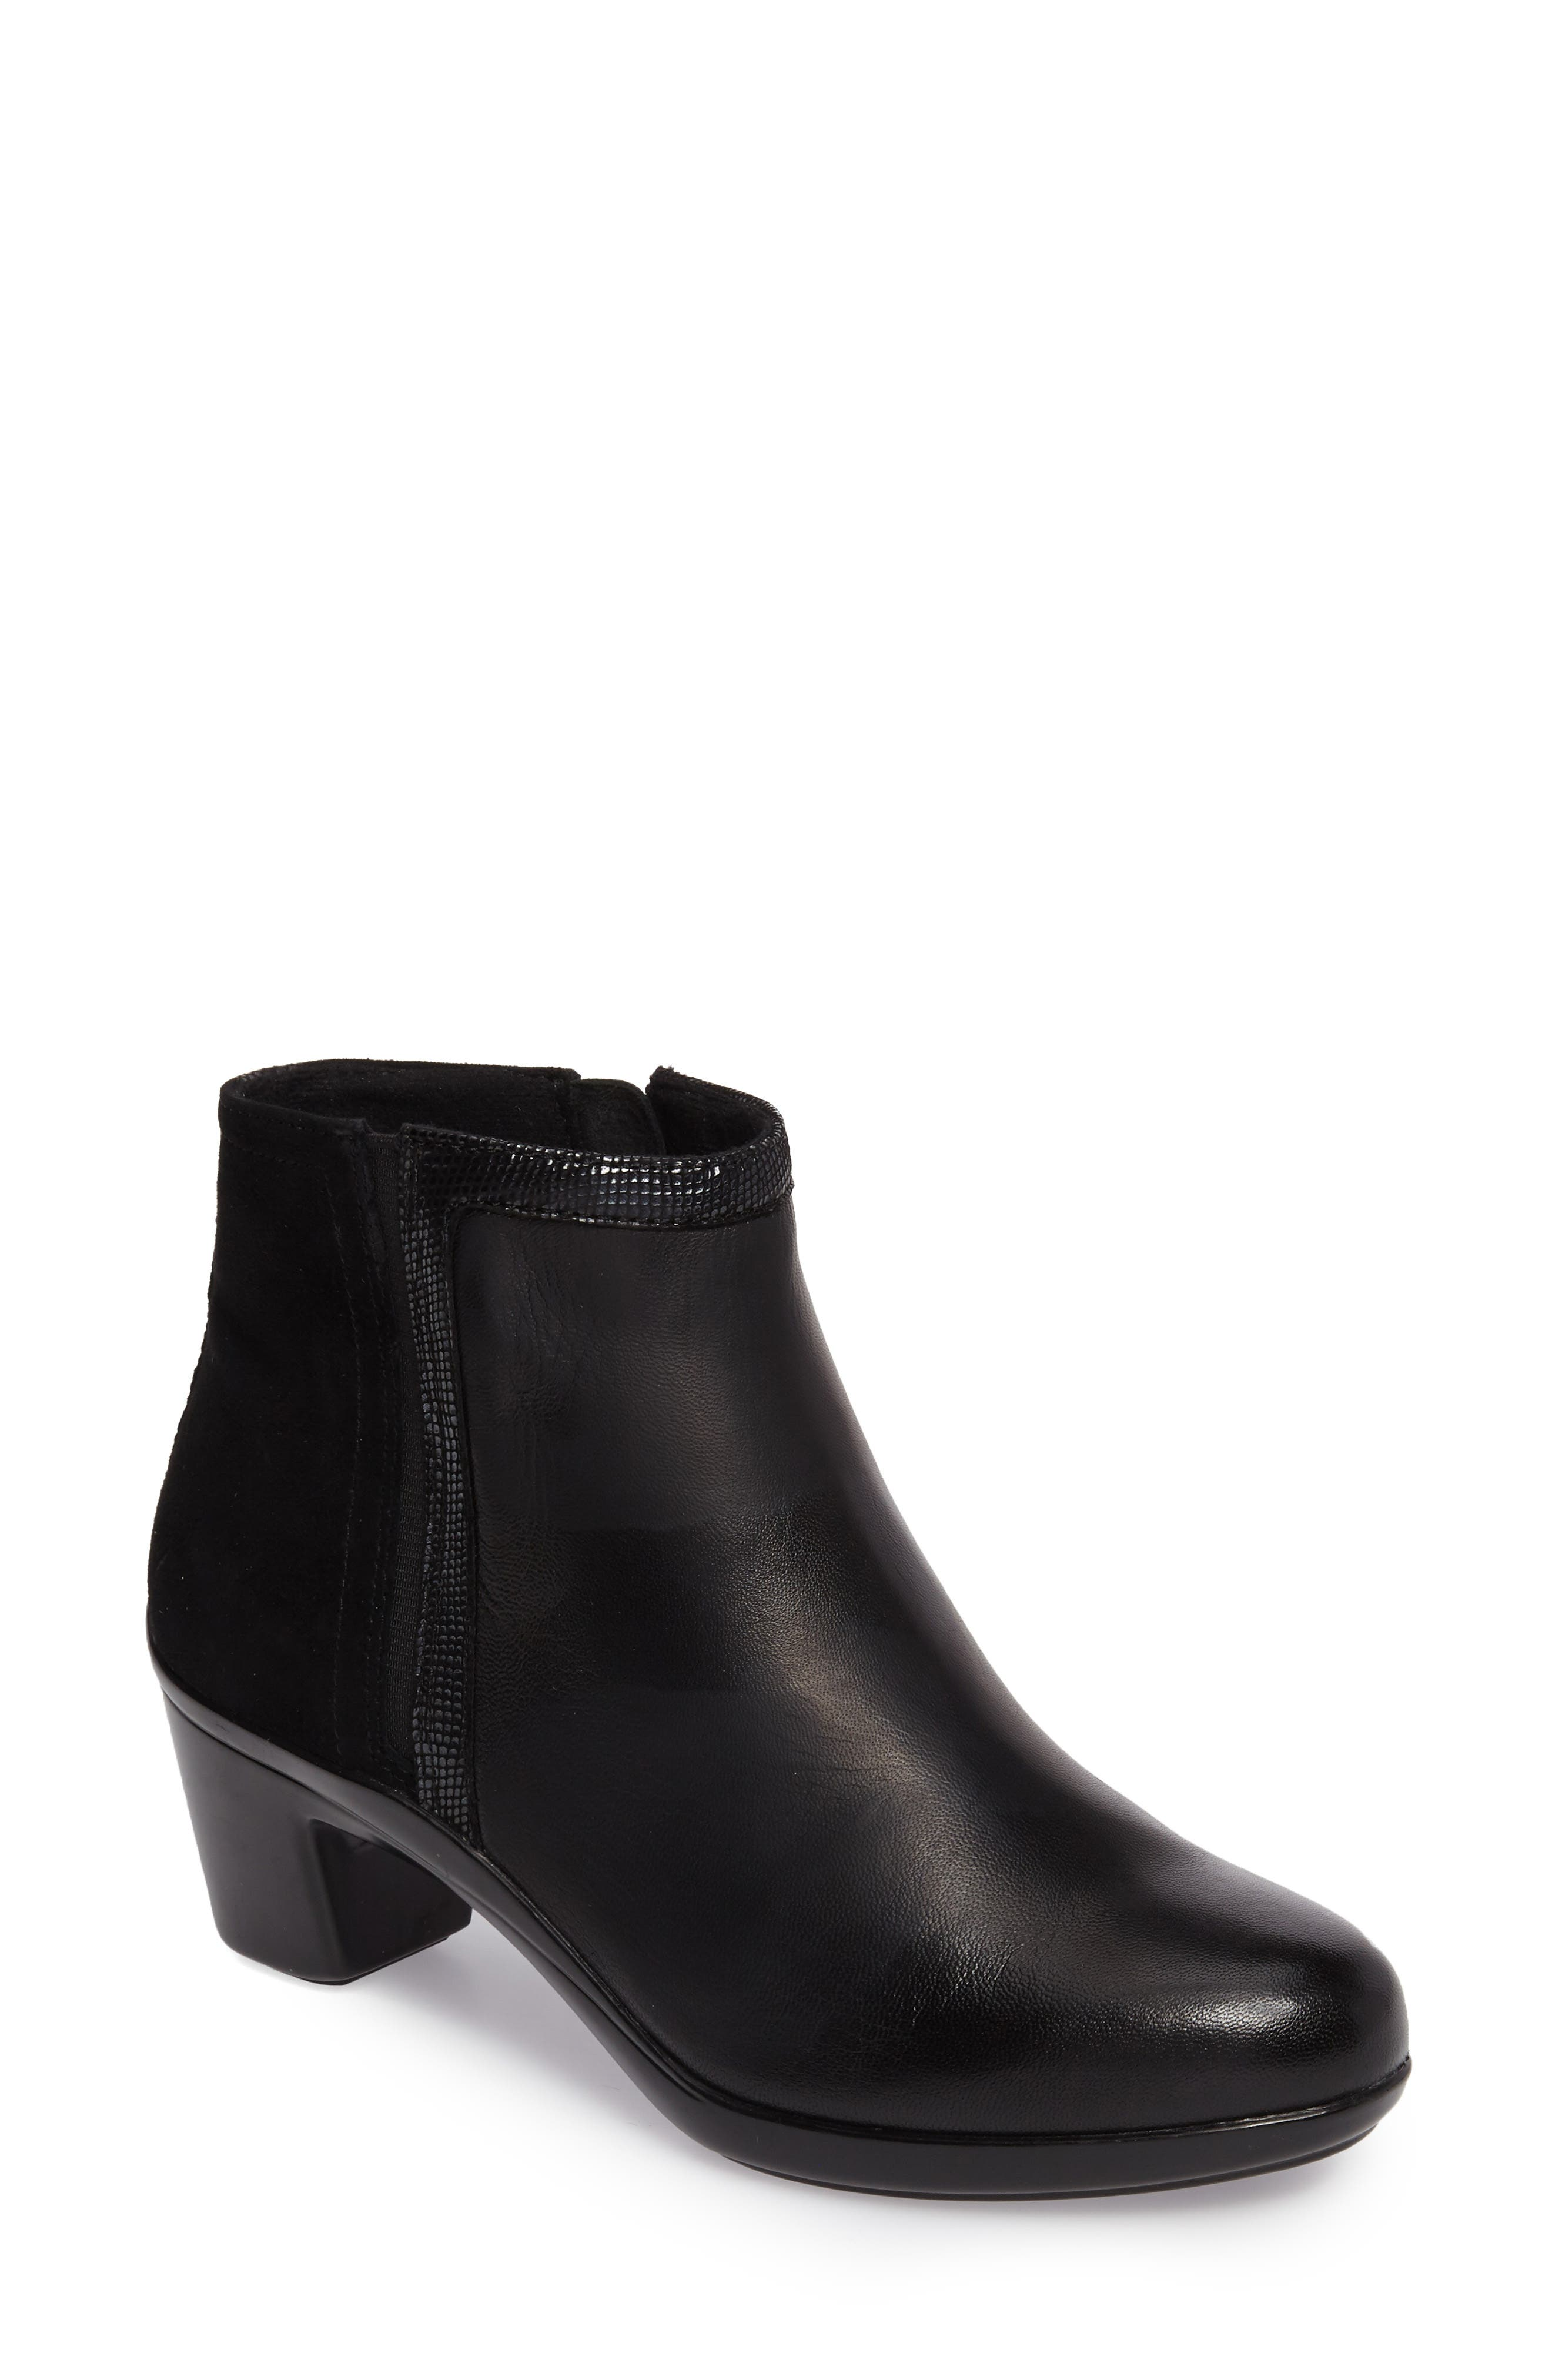 Lexee Wateproof Bootie,                             Main thumbnail 1, color,                             Black Leather